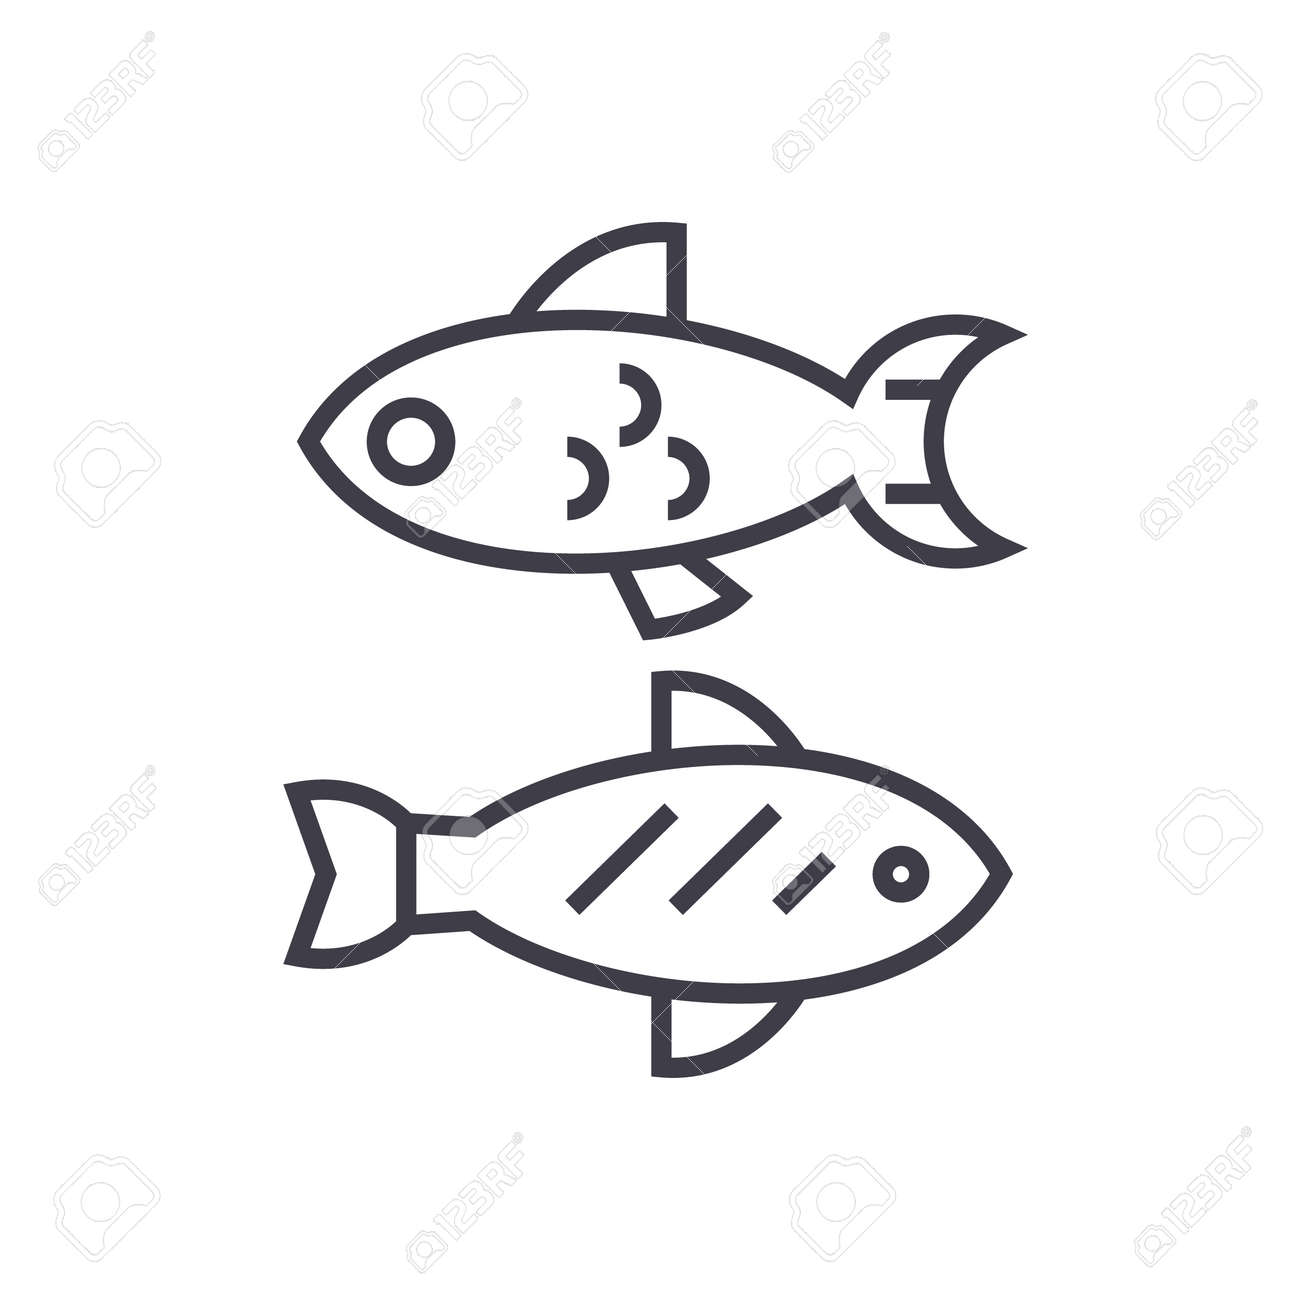 Small Fish Vector Line Icon Sign Illustration On White Background